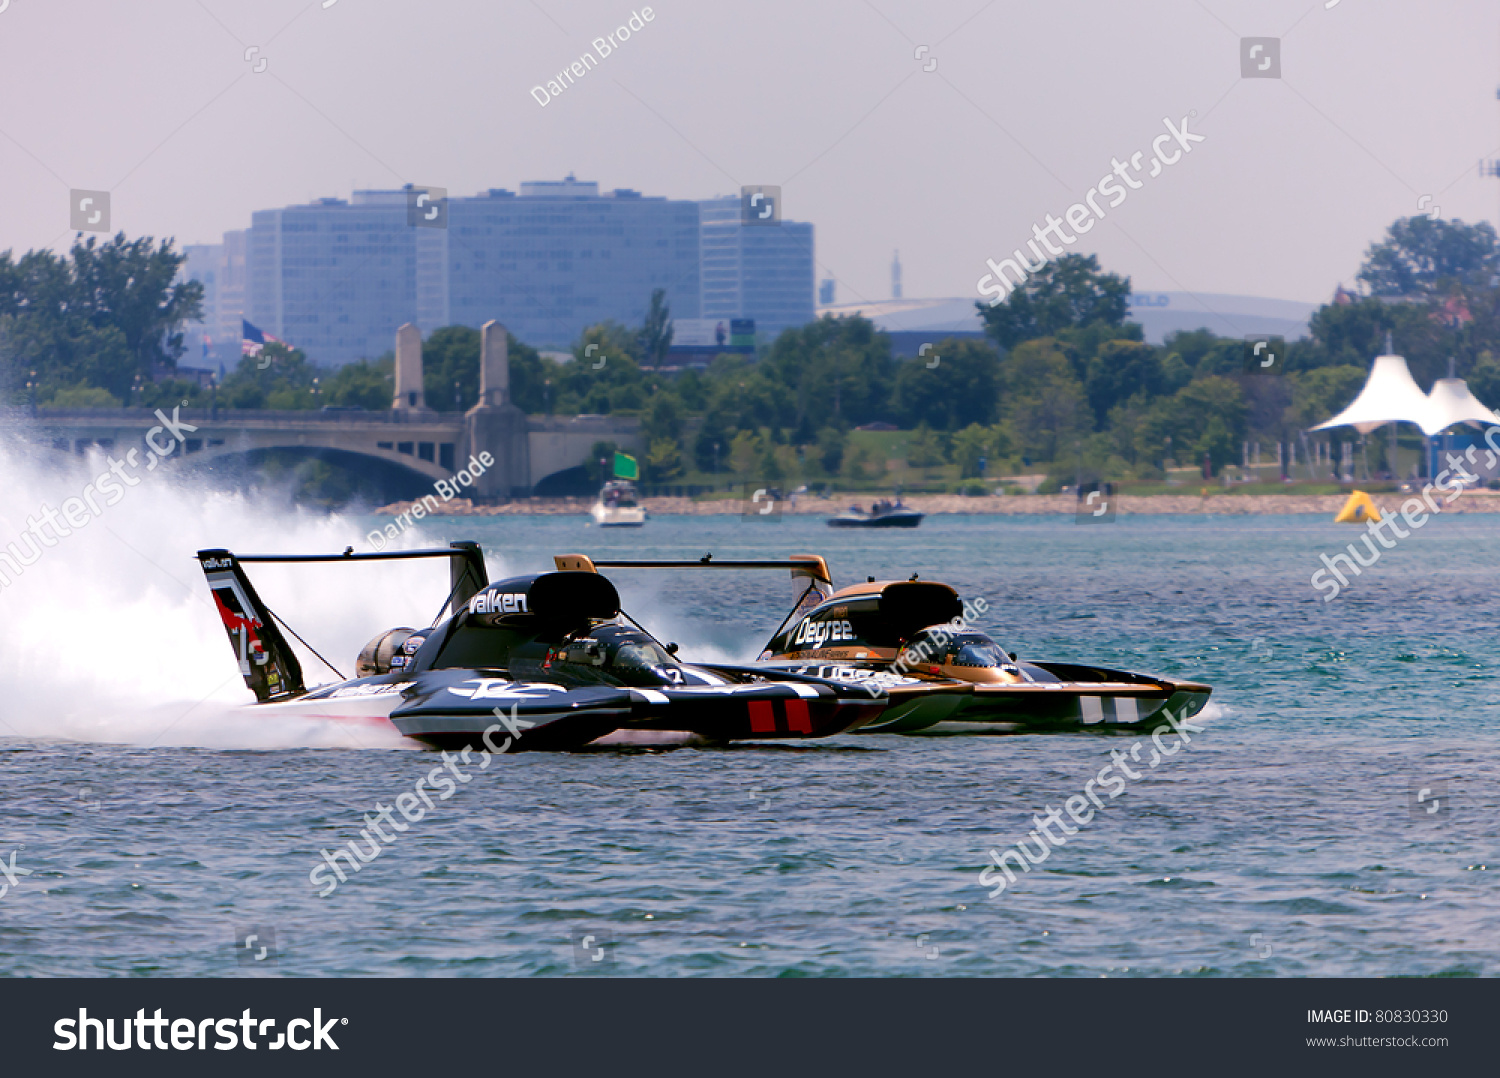 Detroit July 10th Unlimited Hydroplanes Race Stock Photo